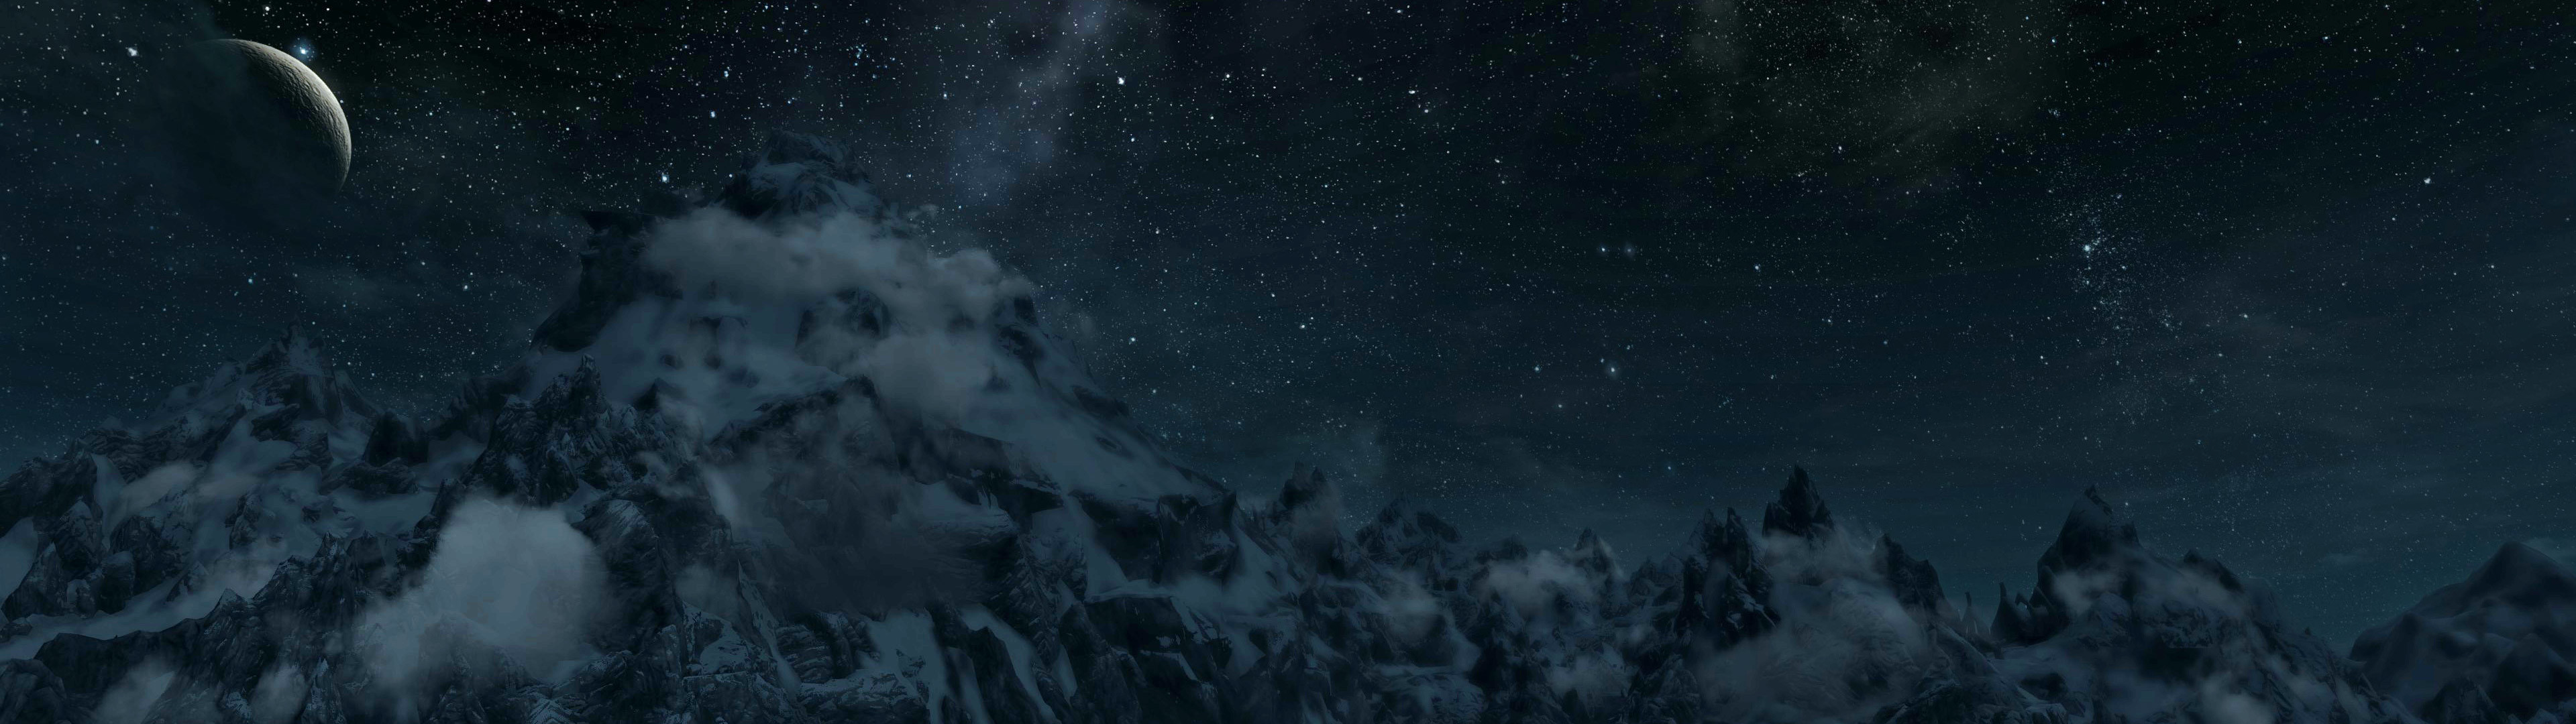 Download Wallpaper Mountain Dual Screen - 577665  Best Photo Reference_477534.jpg